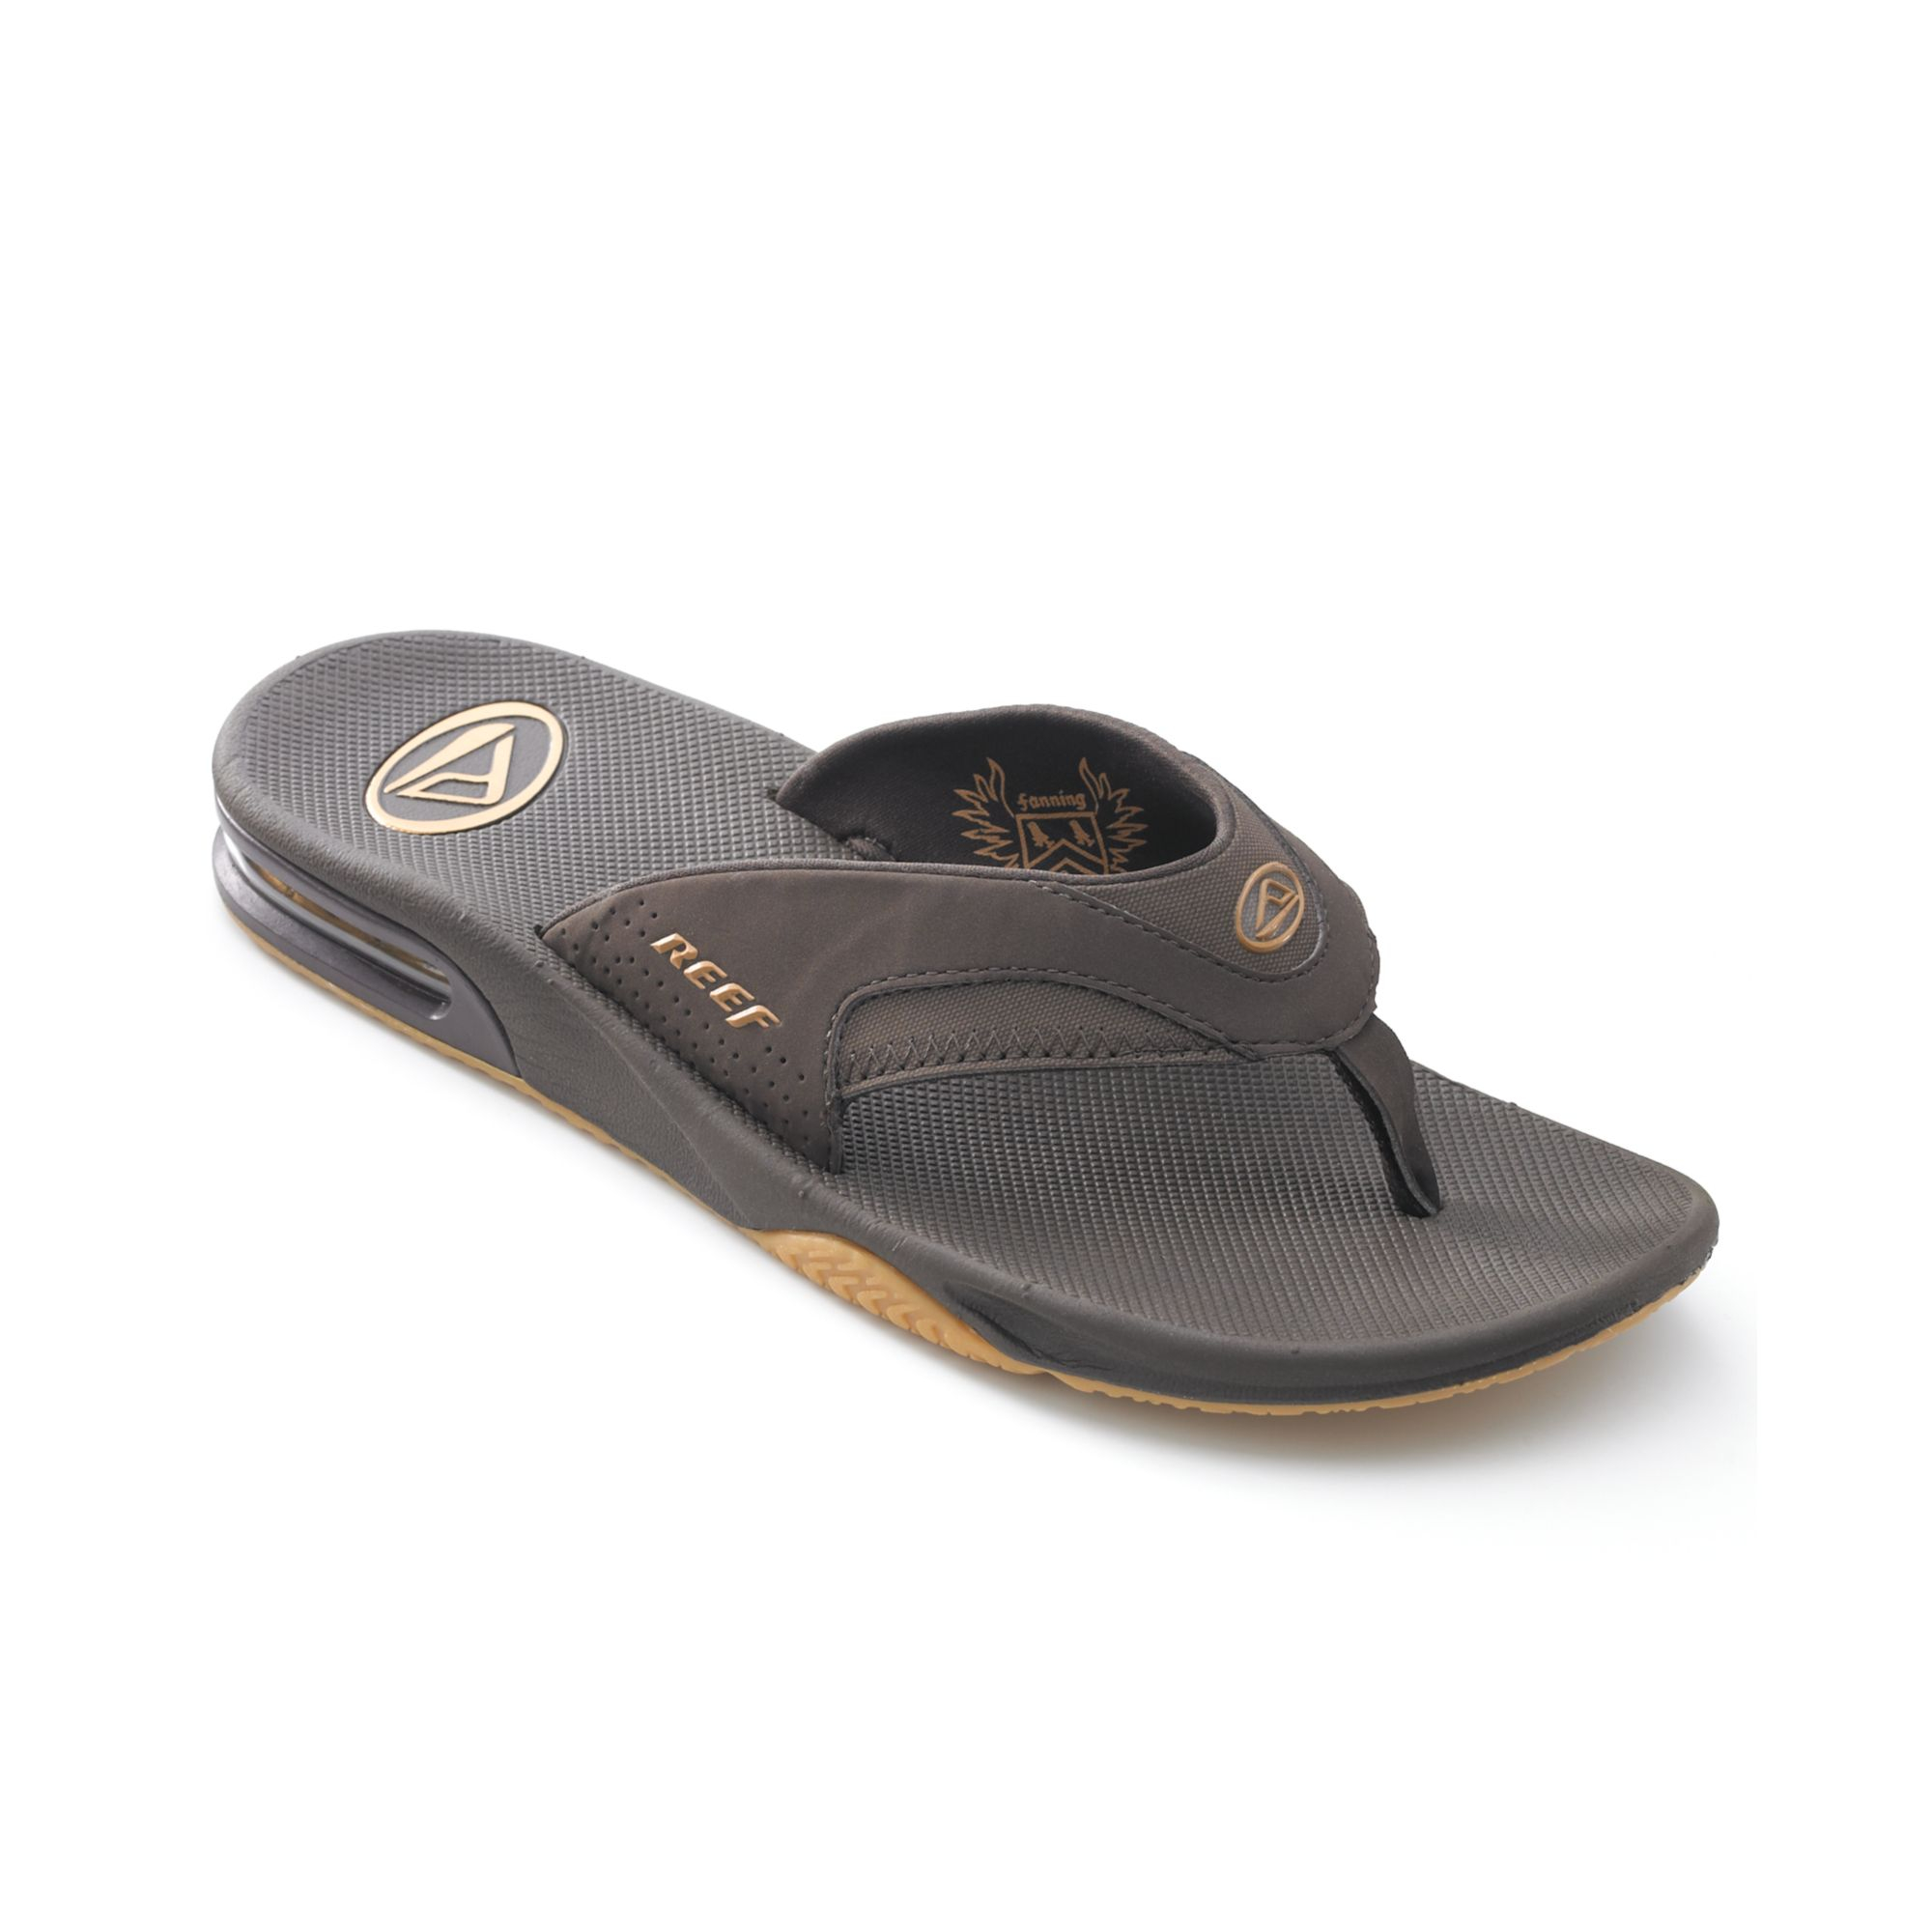 reef fanning thong sandals with bottle opener in brown for men brown gum lyst. Black Bedroom Furniture Sets. Home Design Ideas